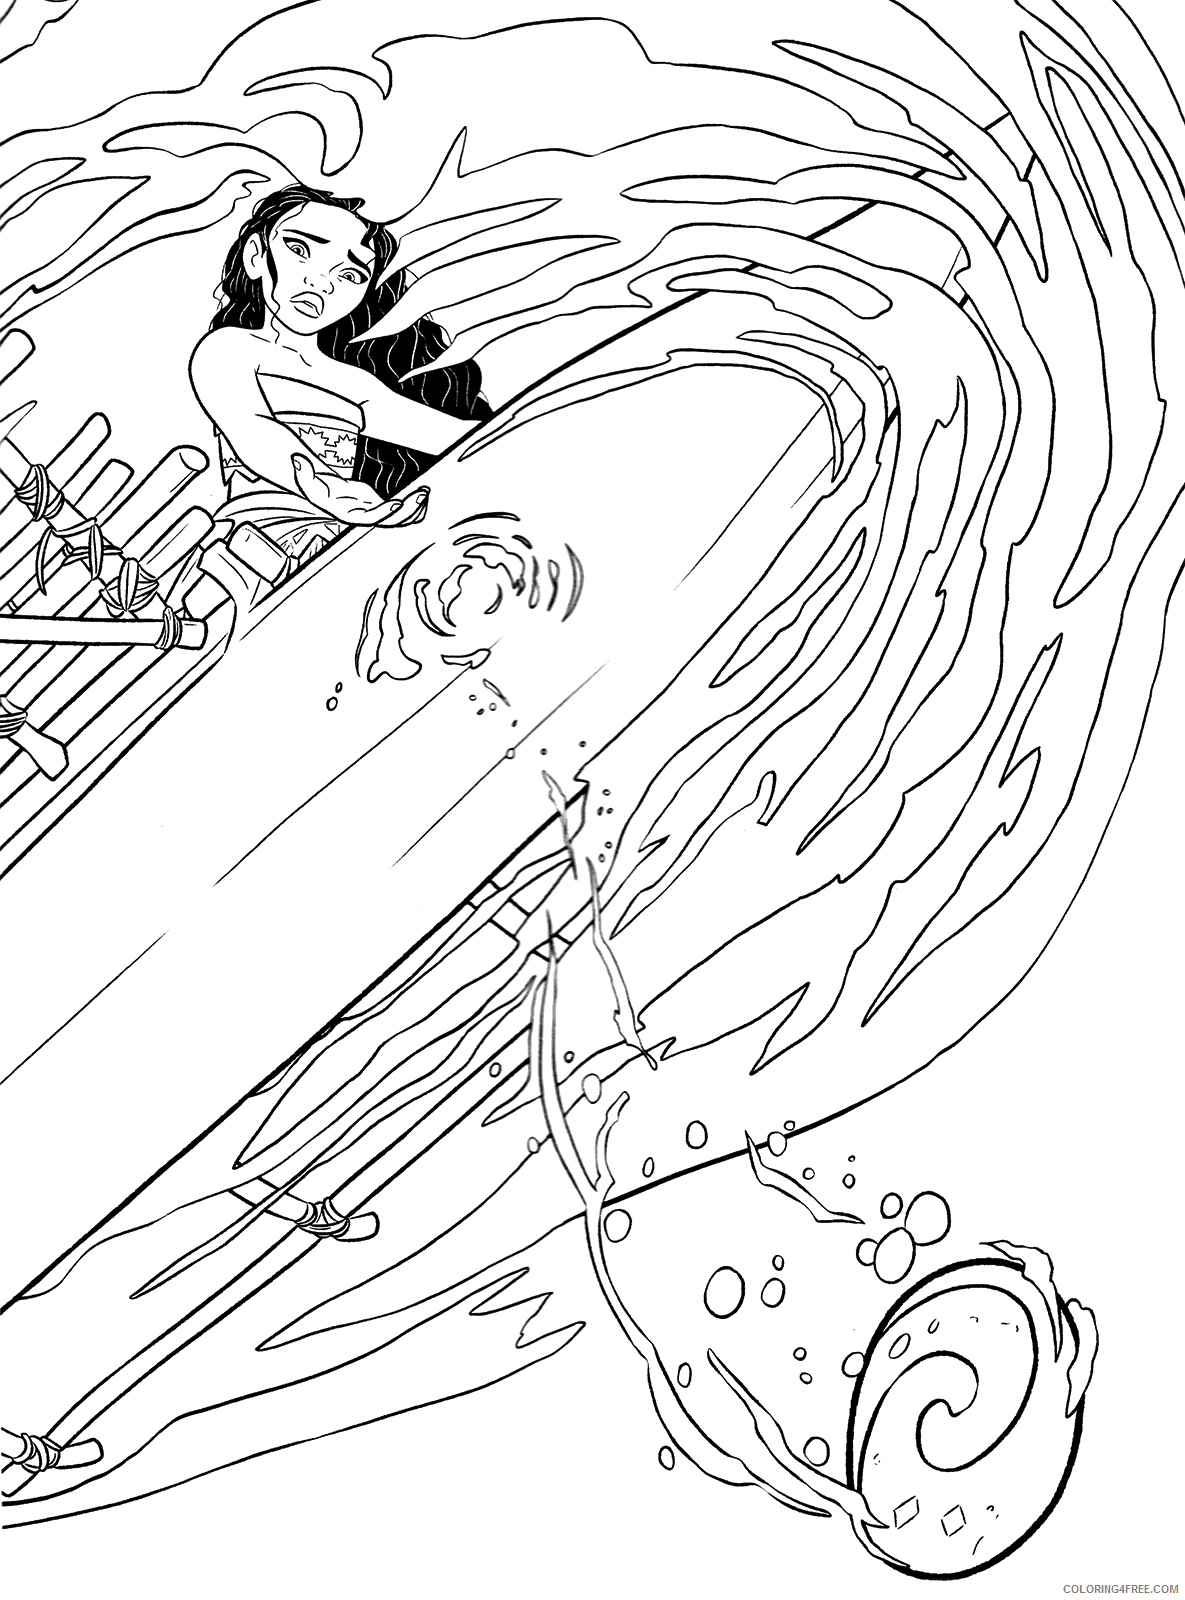 Vaiana Moana Coloring Pages Tv Film Free Moana Printable 2020 11066 Coloring4free Coloring4free Com